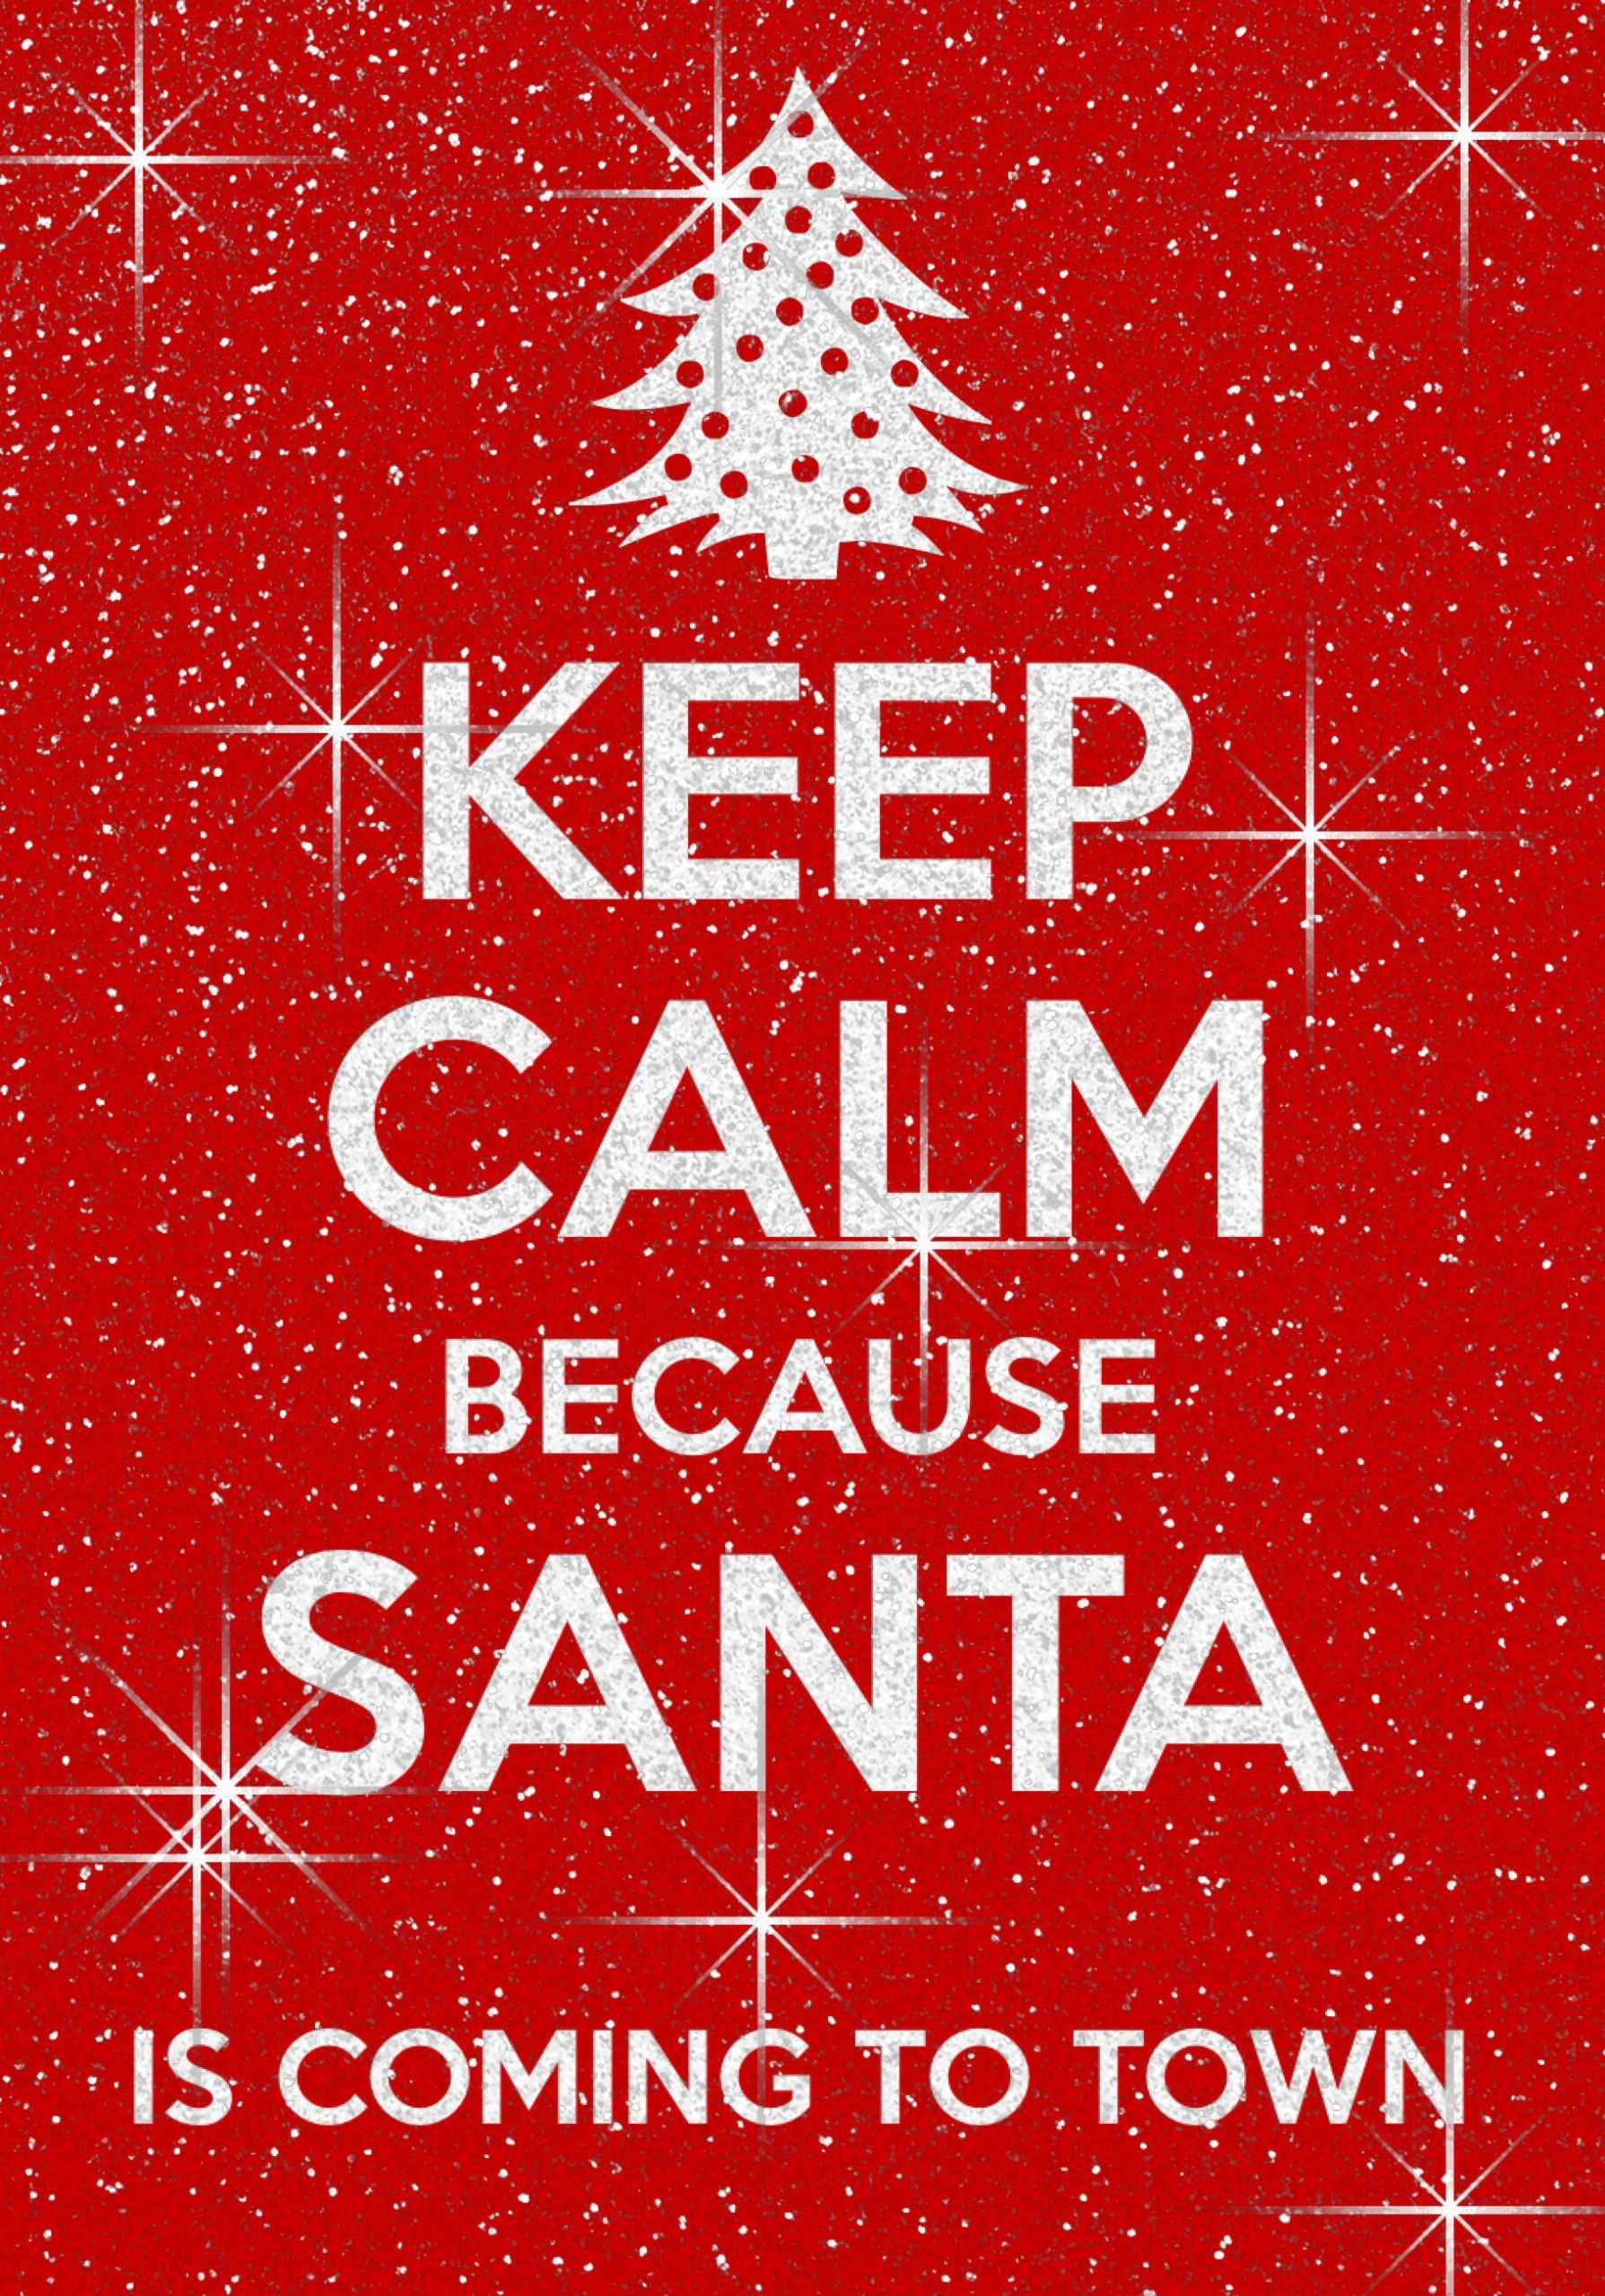 Almost Christmas Quotes  It s almost Christmas woohoo Santa Claus is ing to